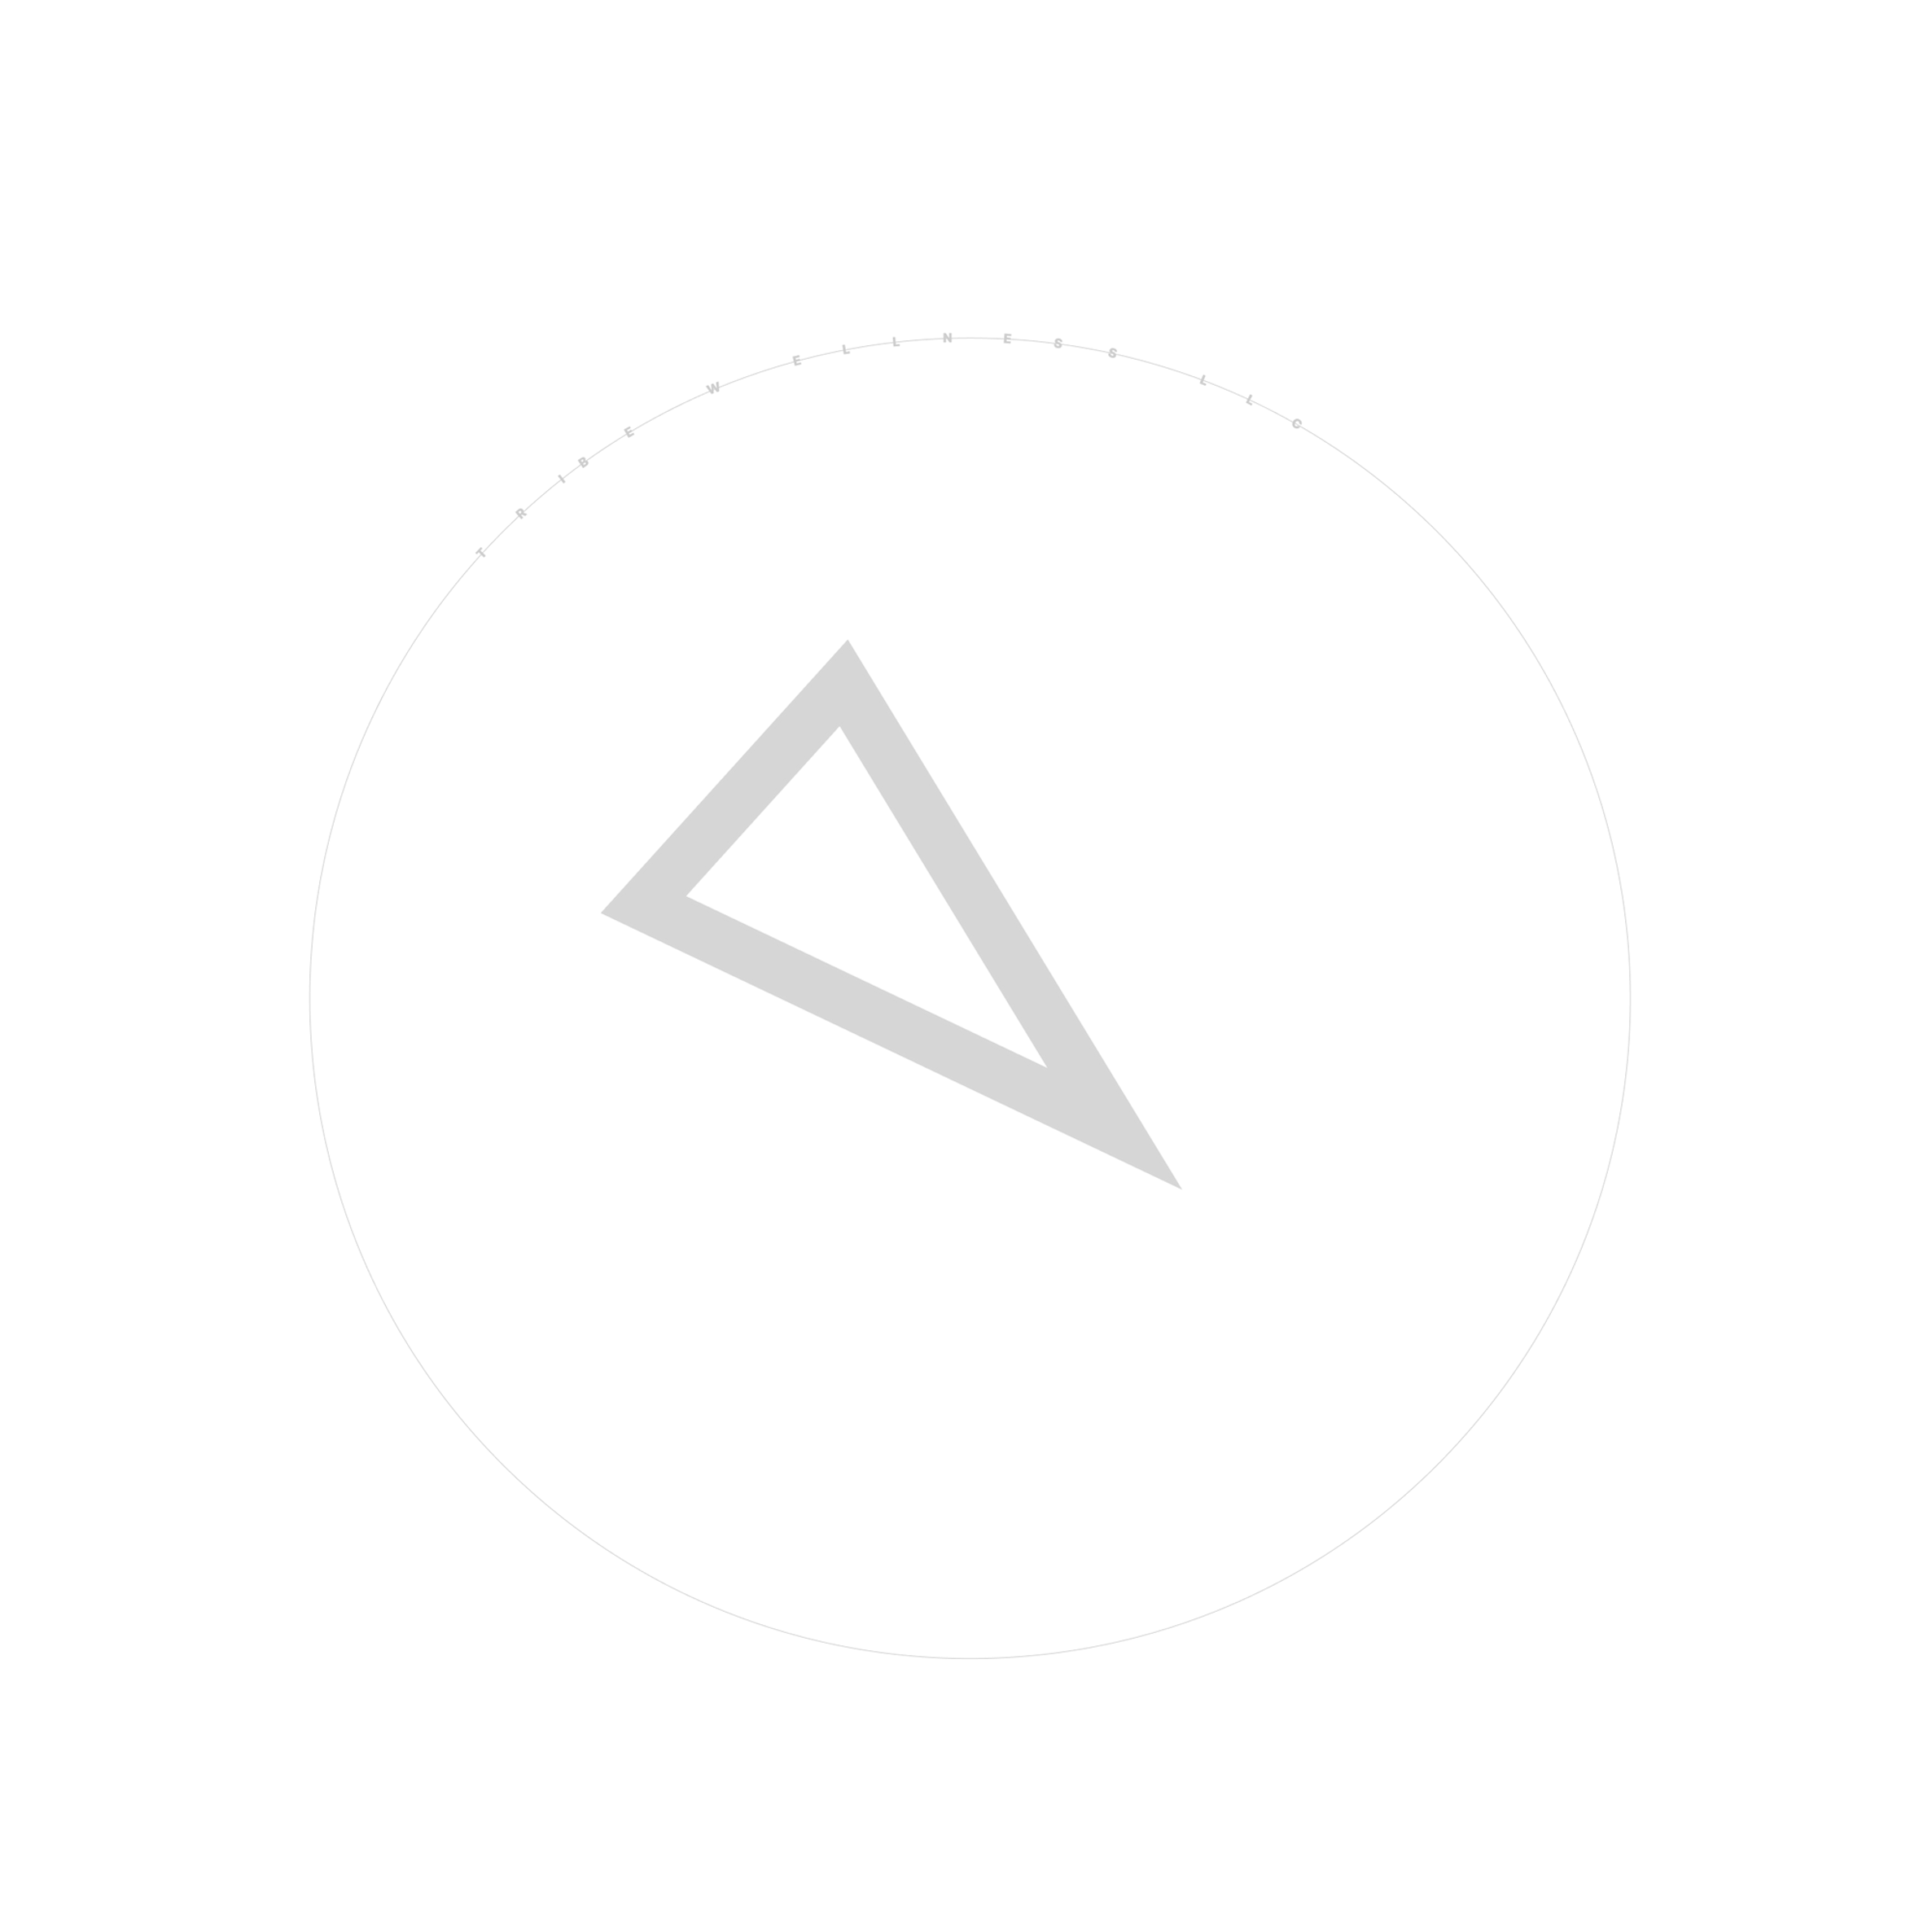 dec-triangle-large.png